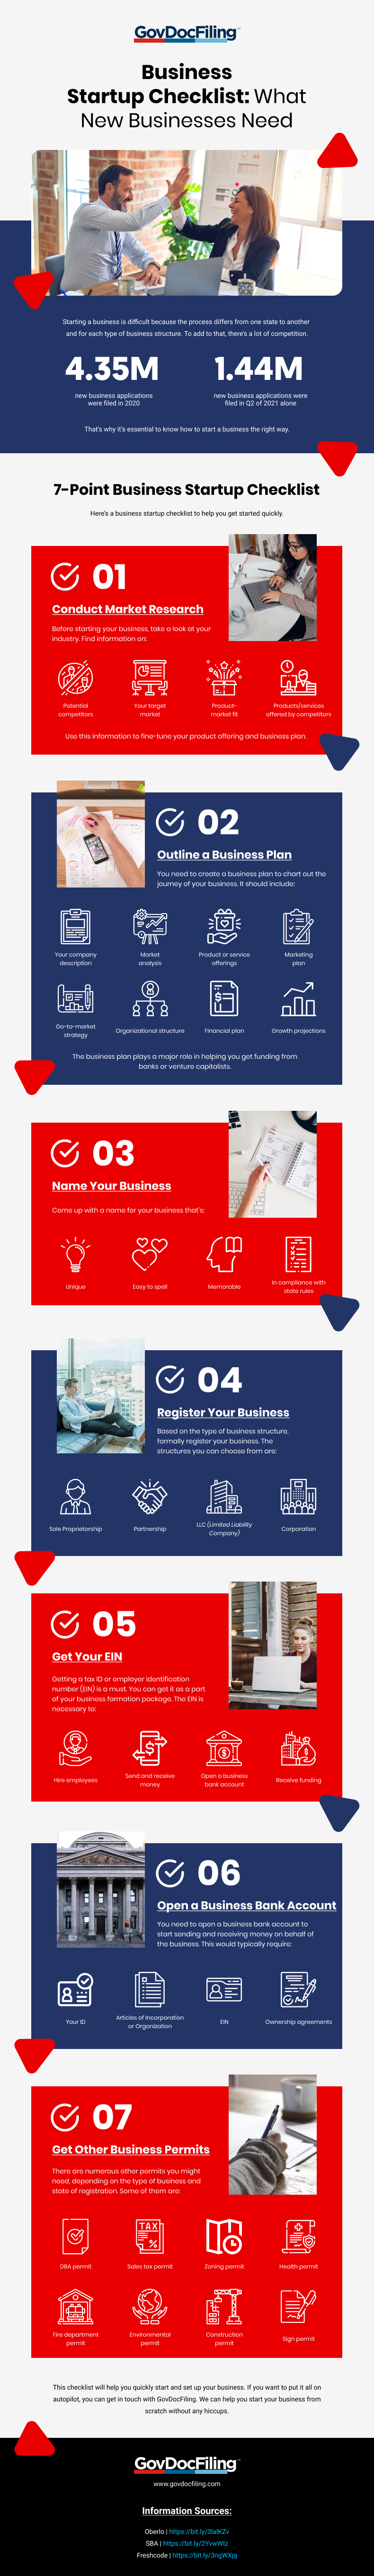 Business Startup Checklist: What New Businesses Need